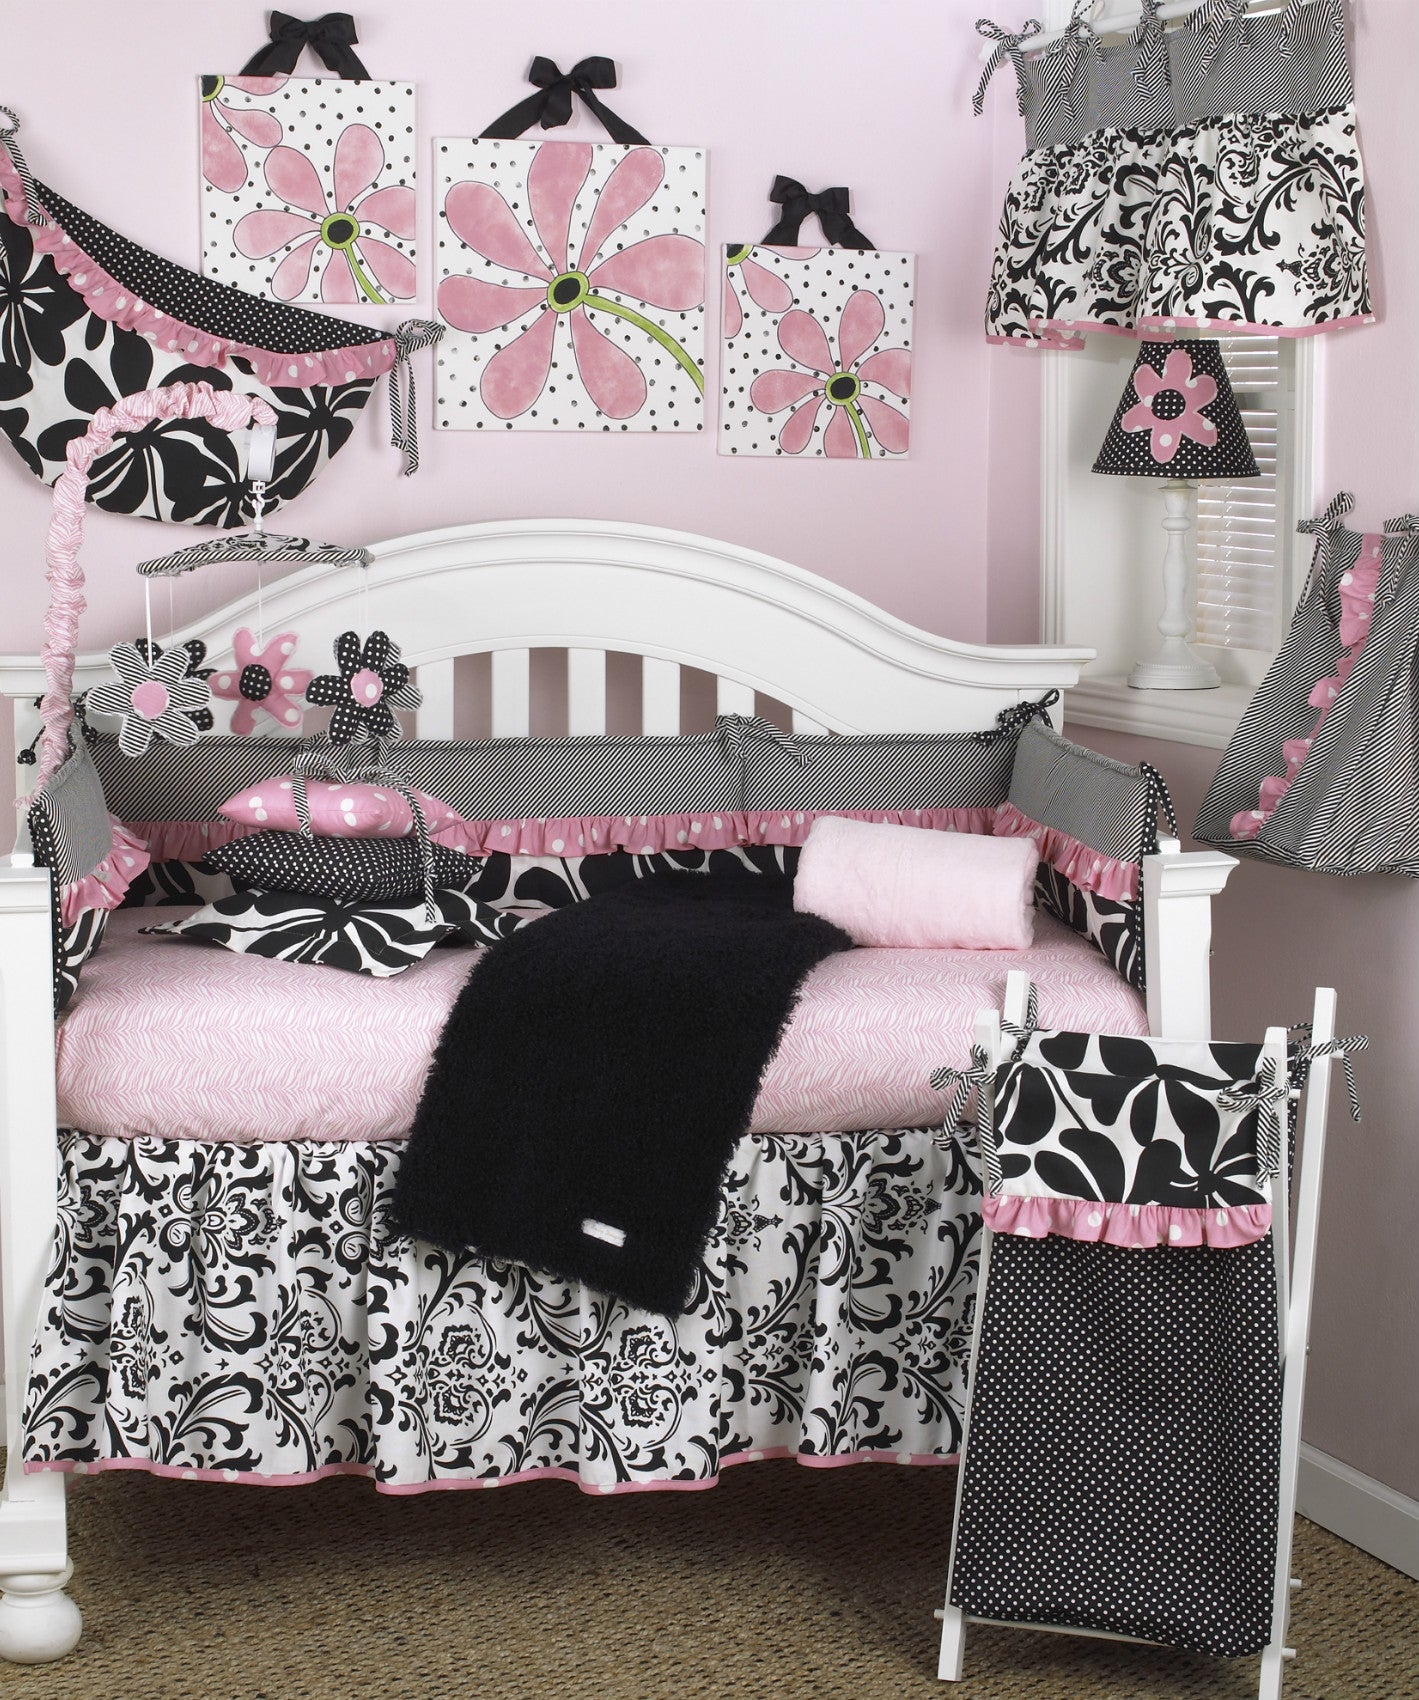 Baby Bedding Sets Baby Bedding Crib Bedding Cotton